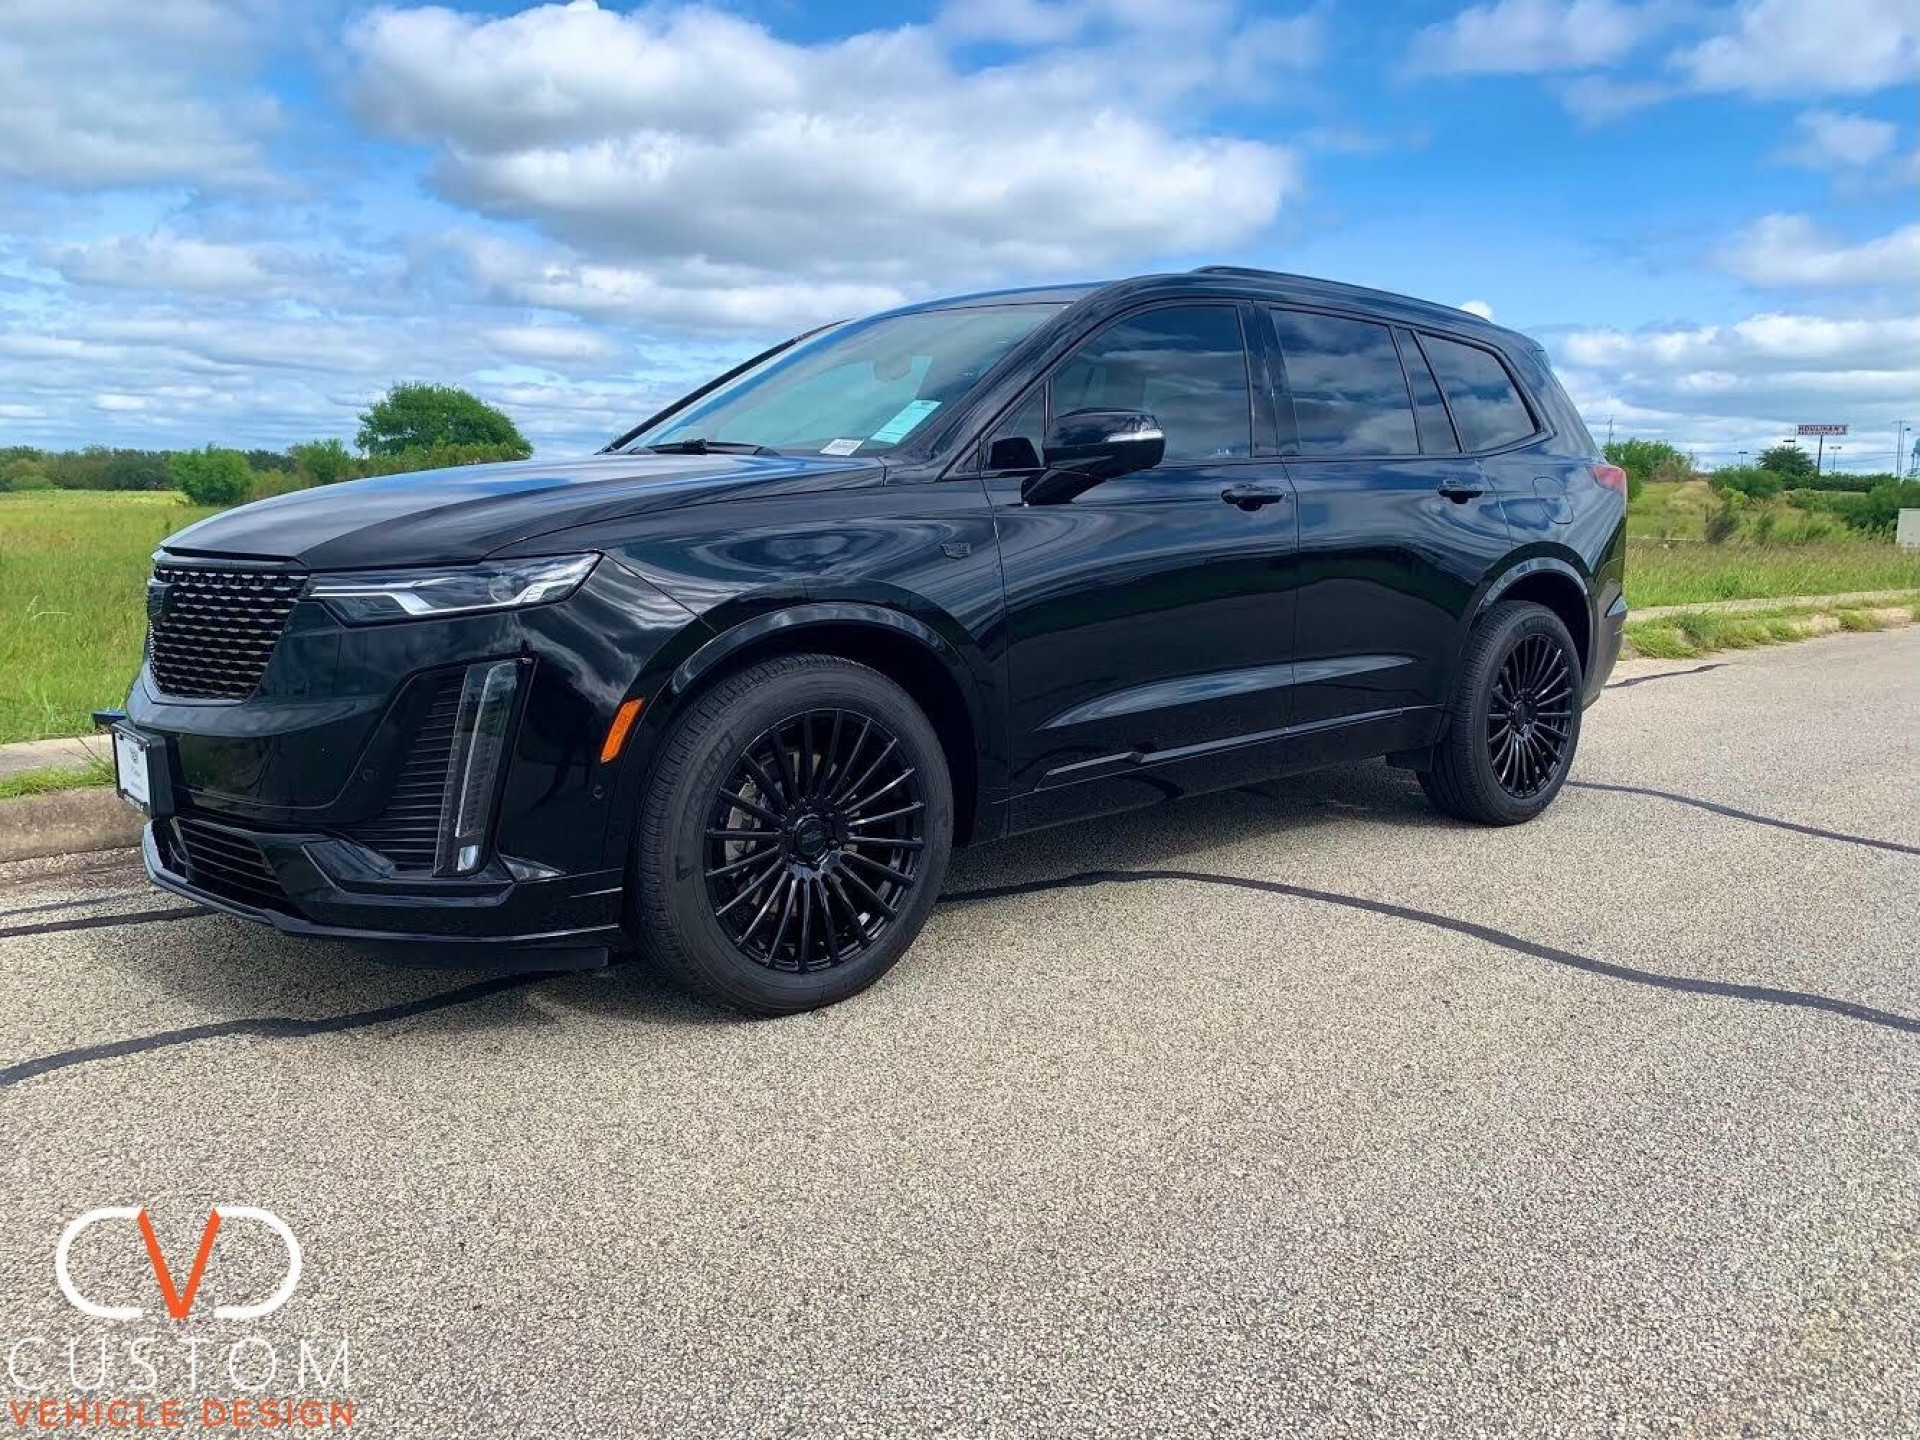 """2020 Cadillac XT6 with full blackout package and 20"""" Vogue VT387 wheels"""